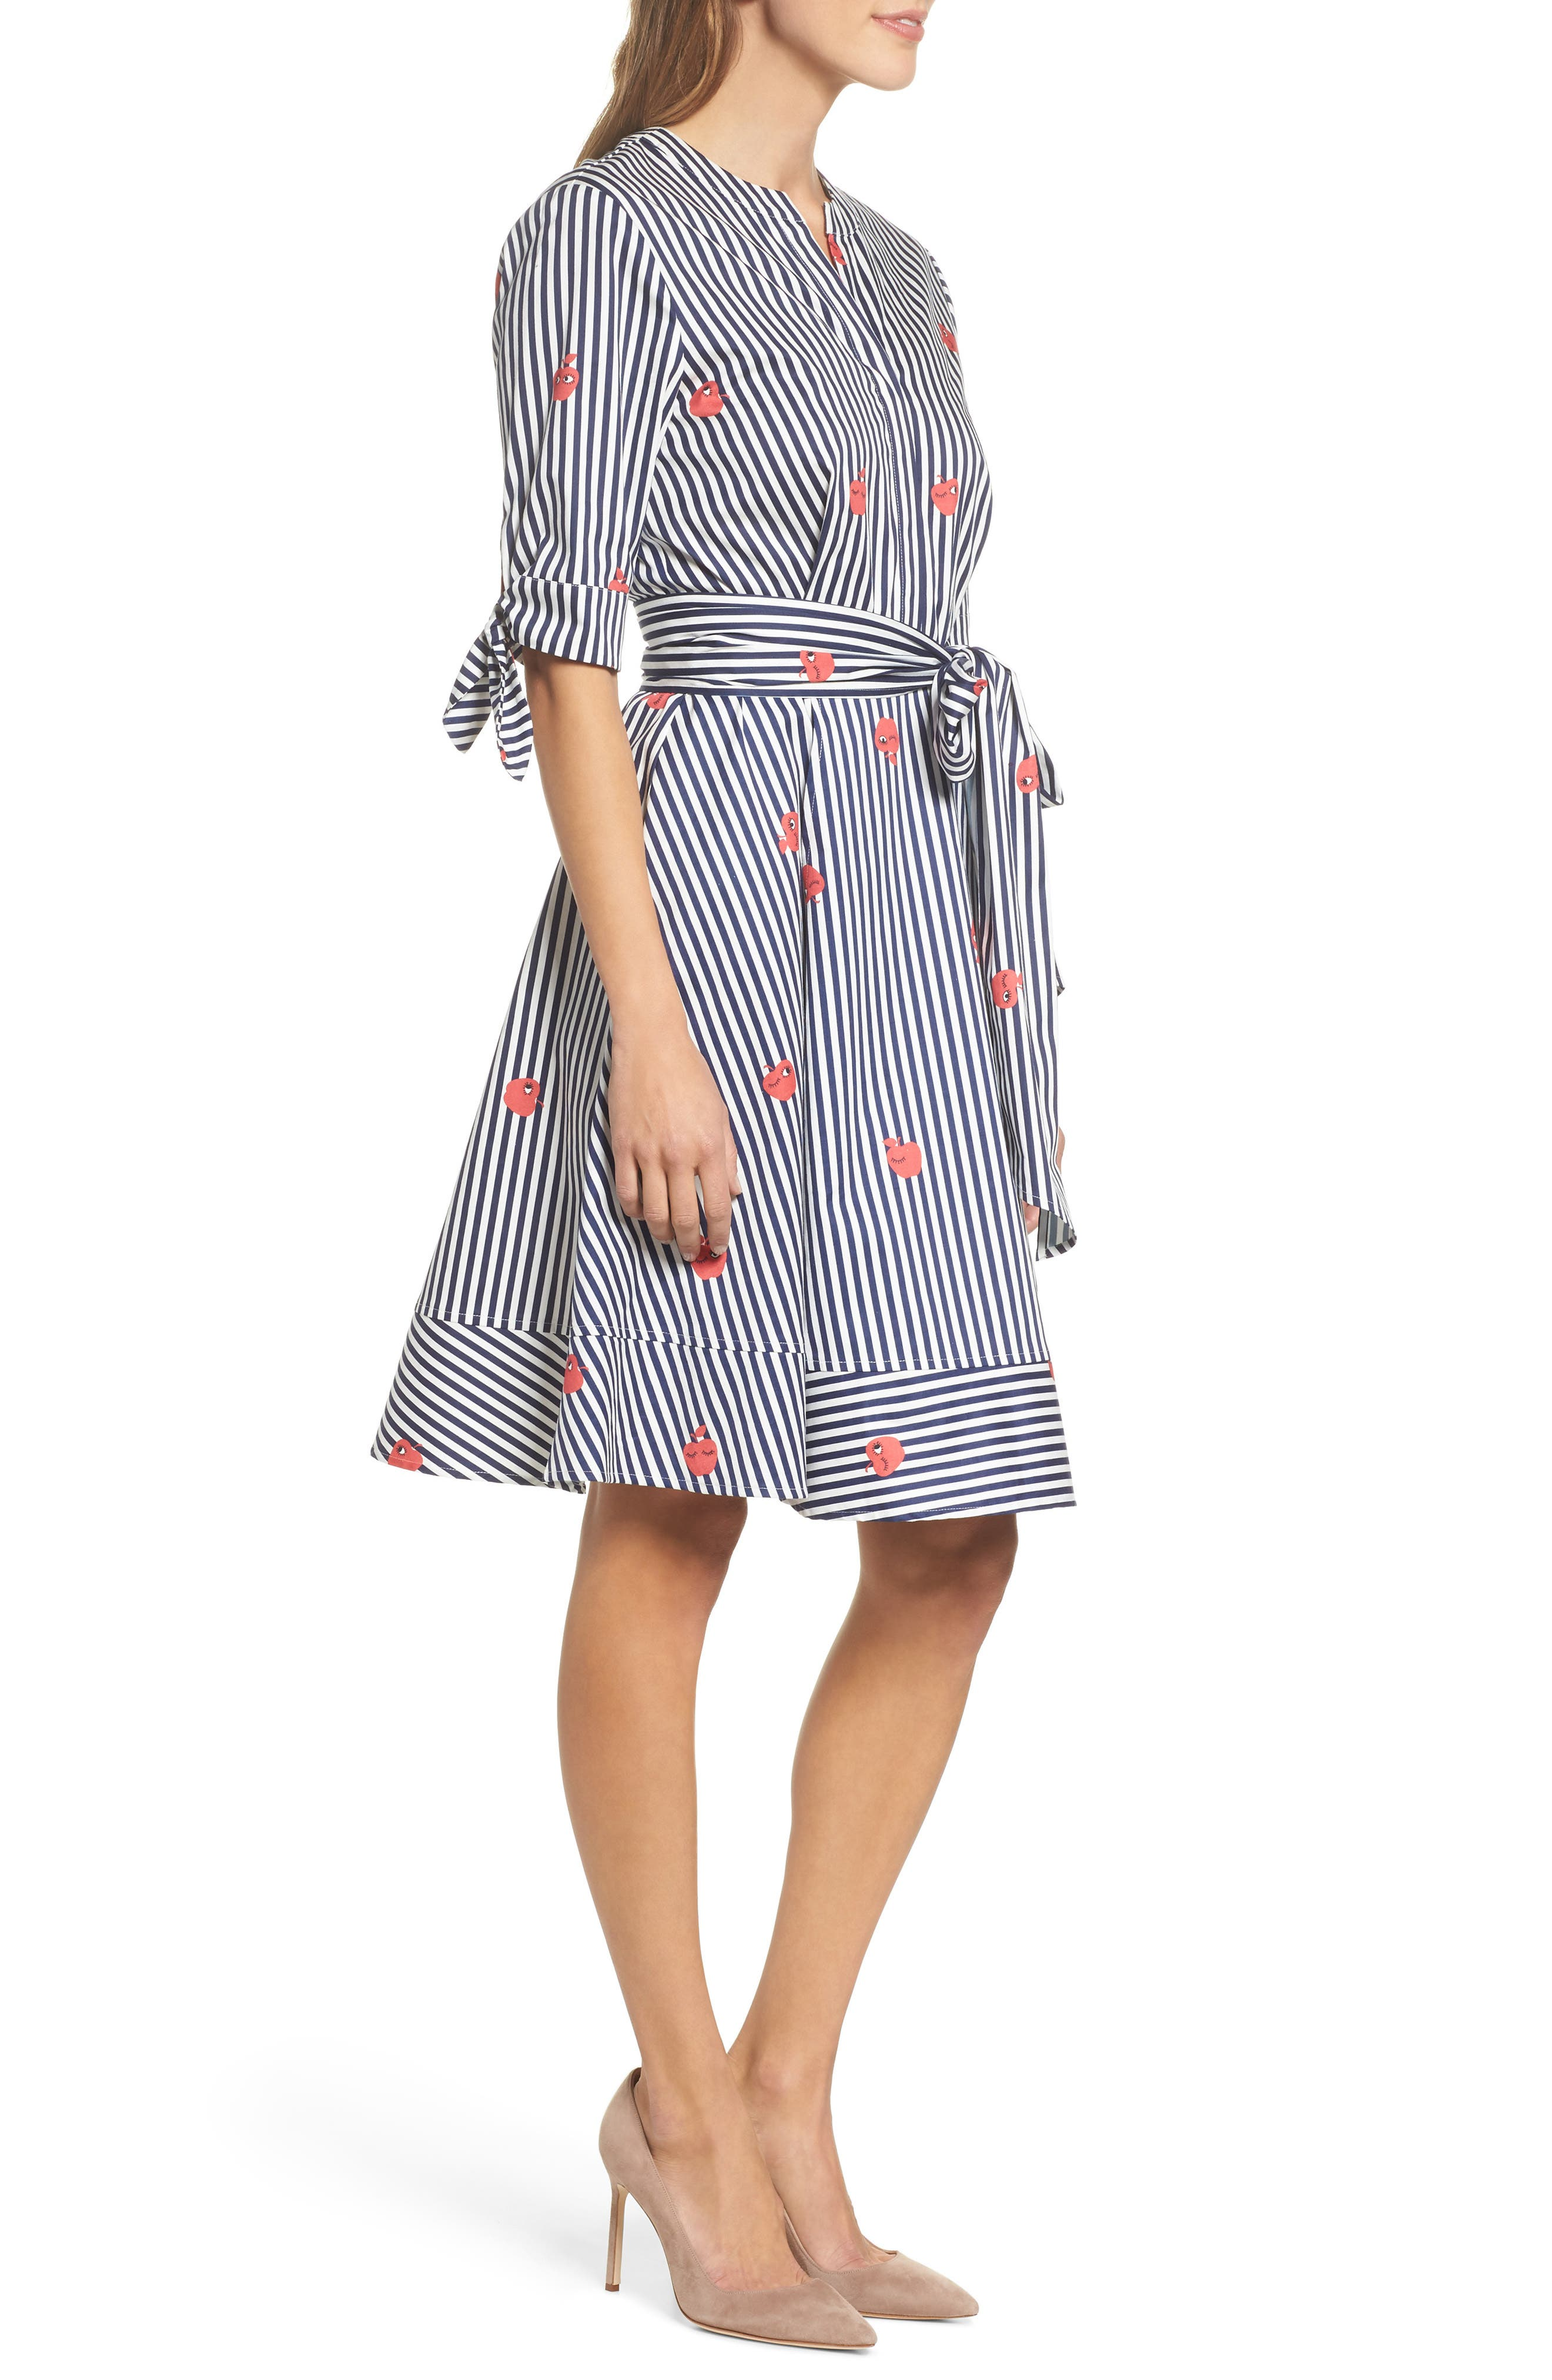 Bella Tie Front Fit & Flare Shirtdress,                             Alternate thumbnail 3, color,                             Navy/ White Stripe